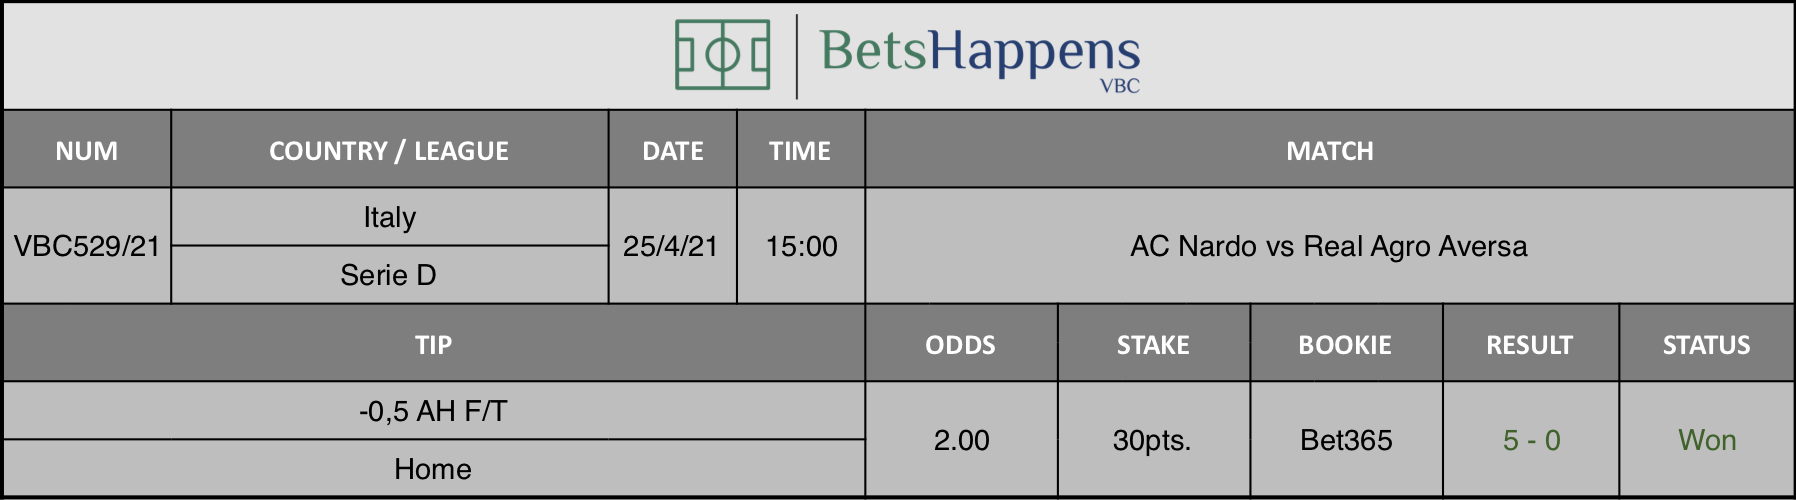 Results of our tip for the AC Nardo vs Real Agro Aversa match where -0,5 AH F/T Home is recommended.